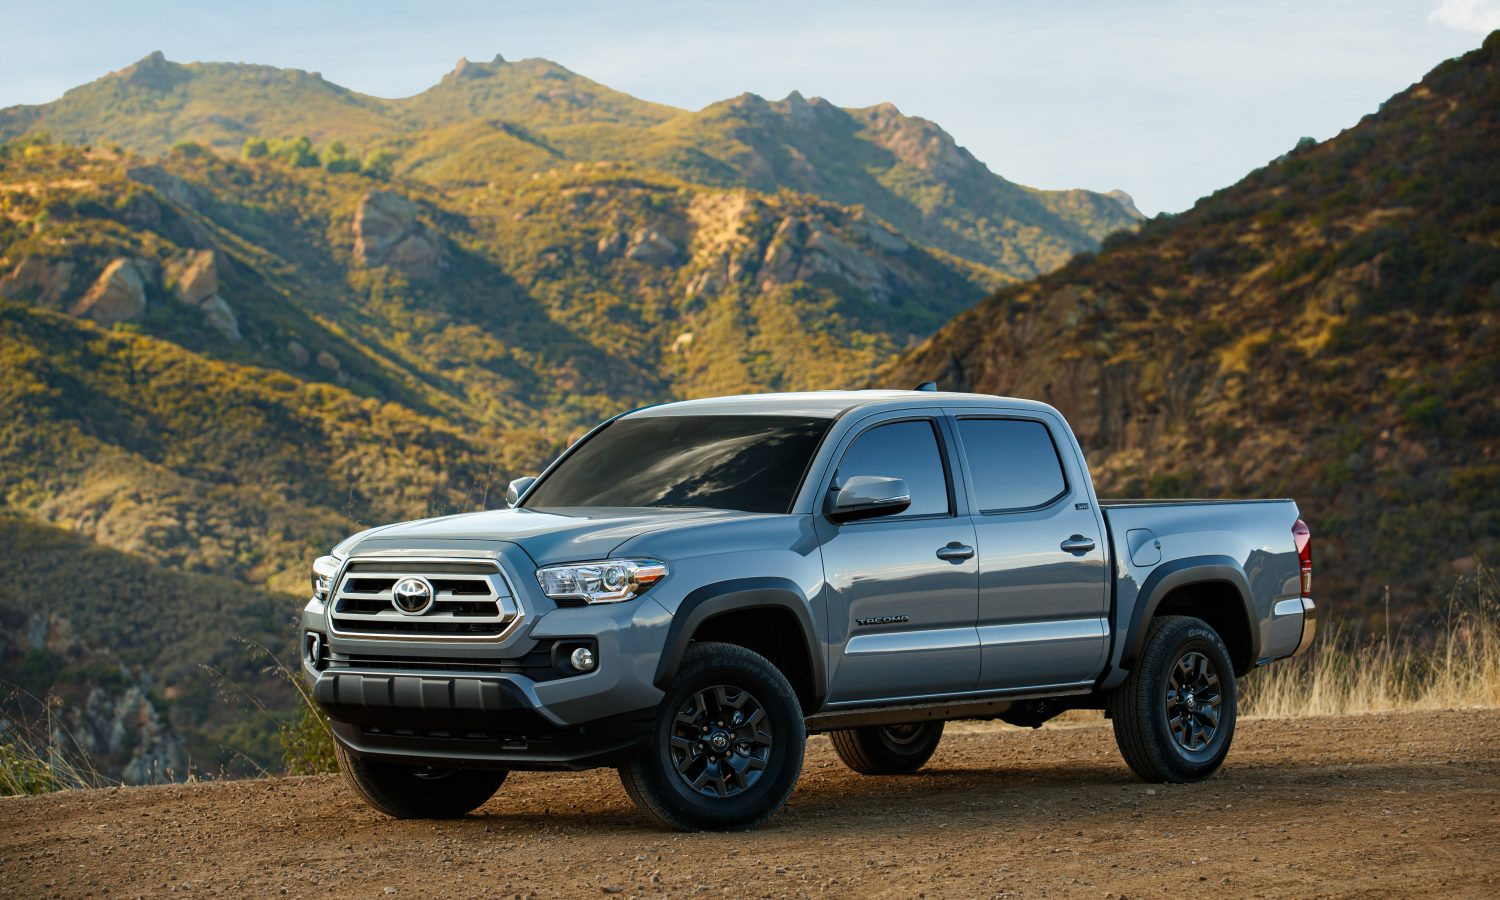 2021 Toyota Tacoma Poised to Keep Leadership Role While Rolling out New Special Editions